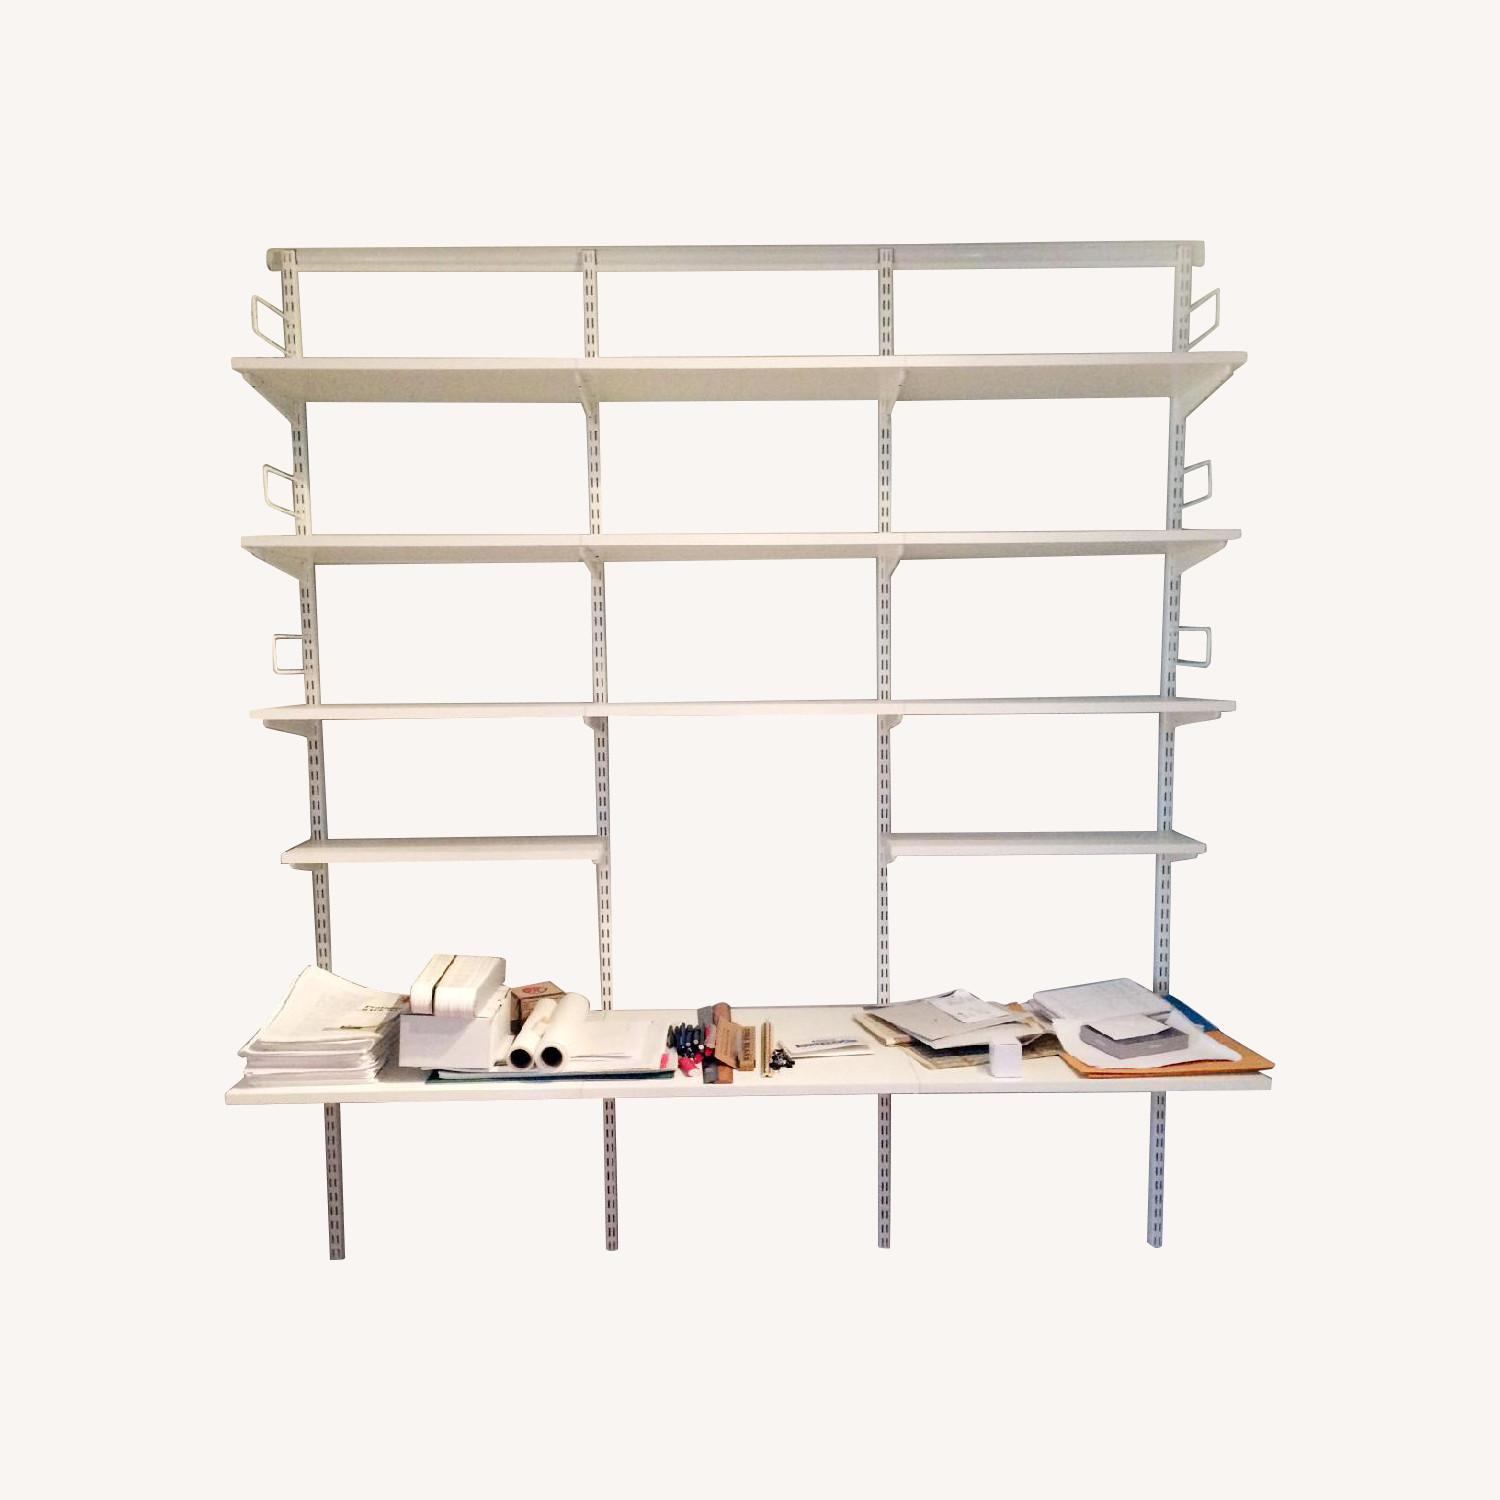 Container Store Elfa Desk and Bookshelf Components - image-0